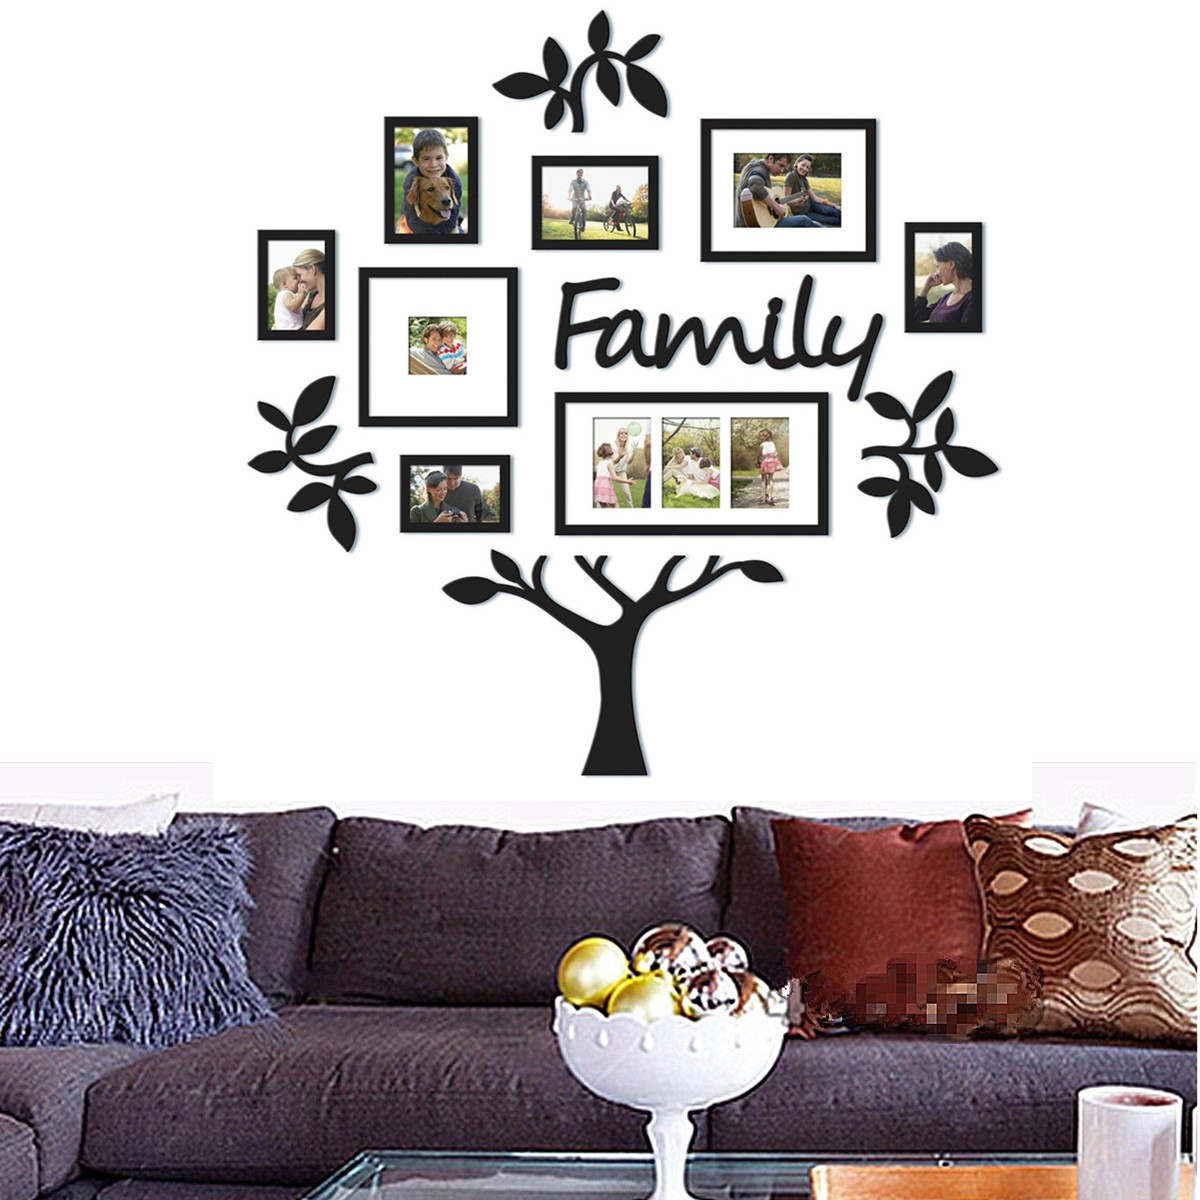 Family Tree Frame Collage Pictures Photo Frame Collage Photo Wall ...